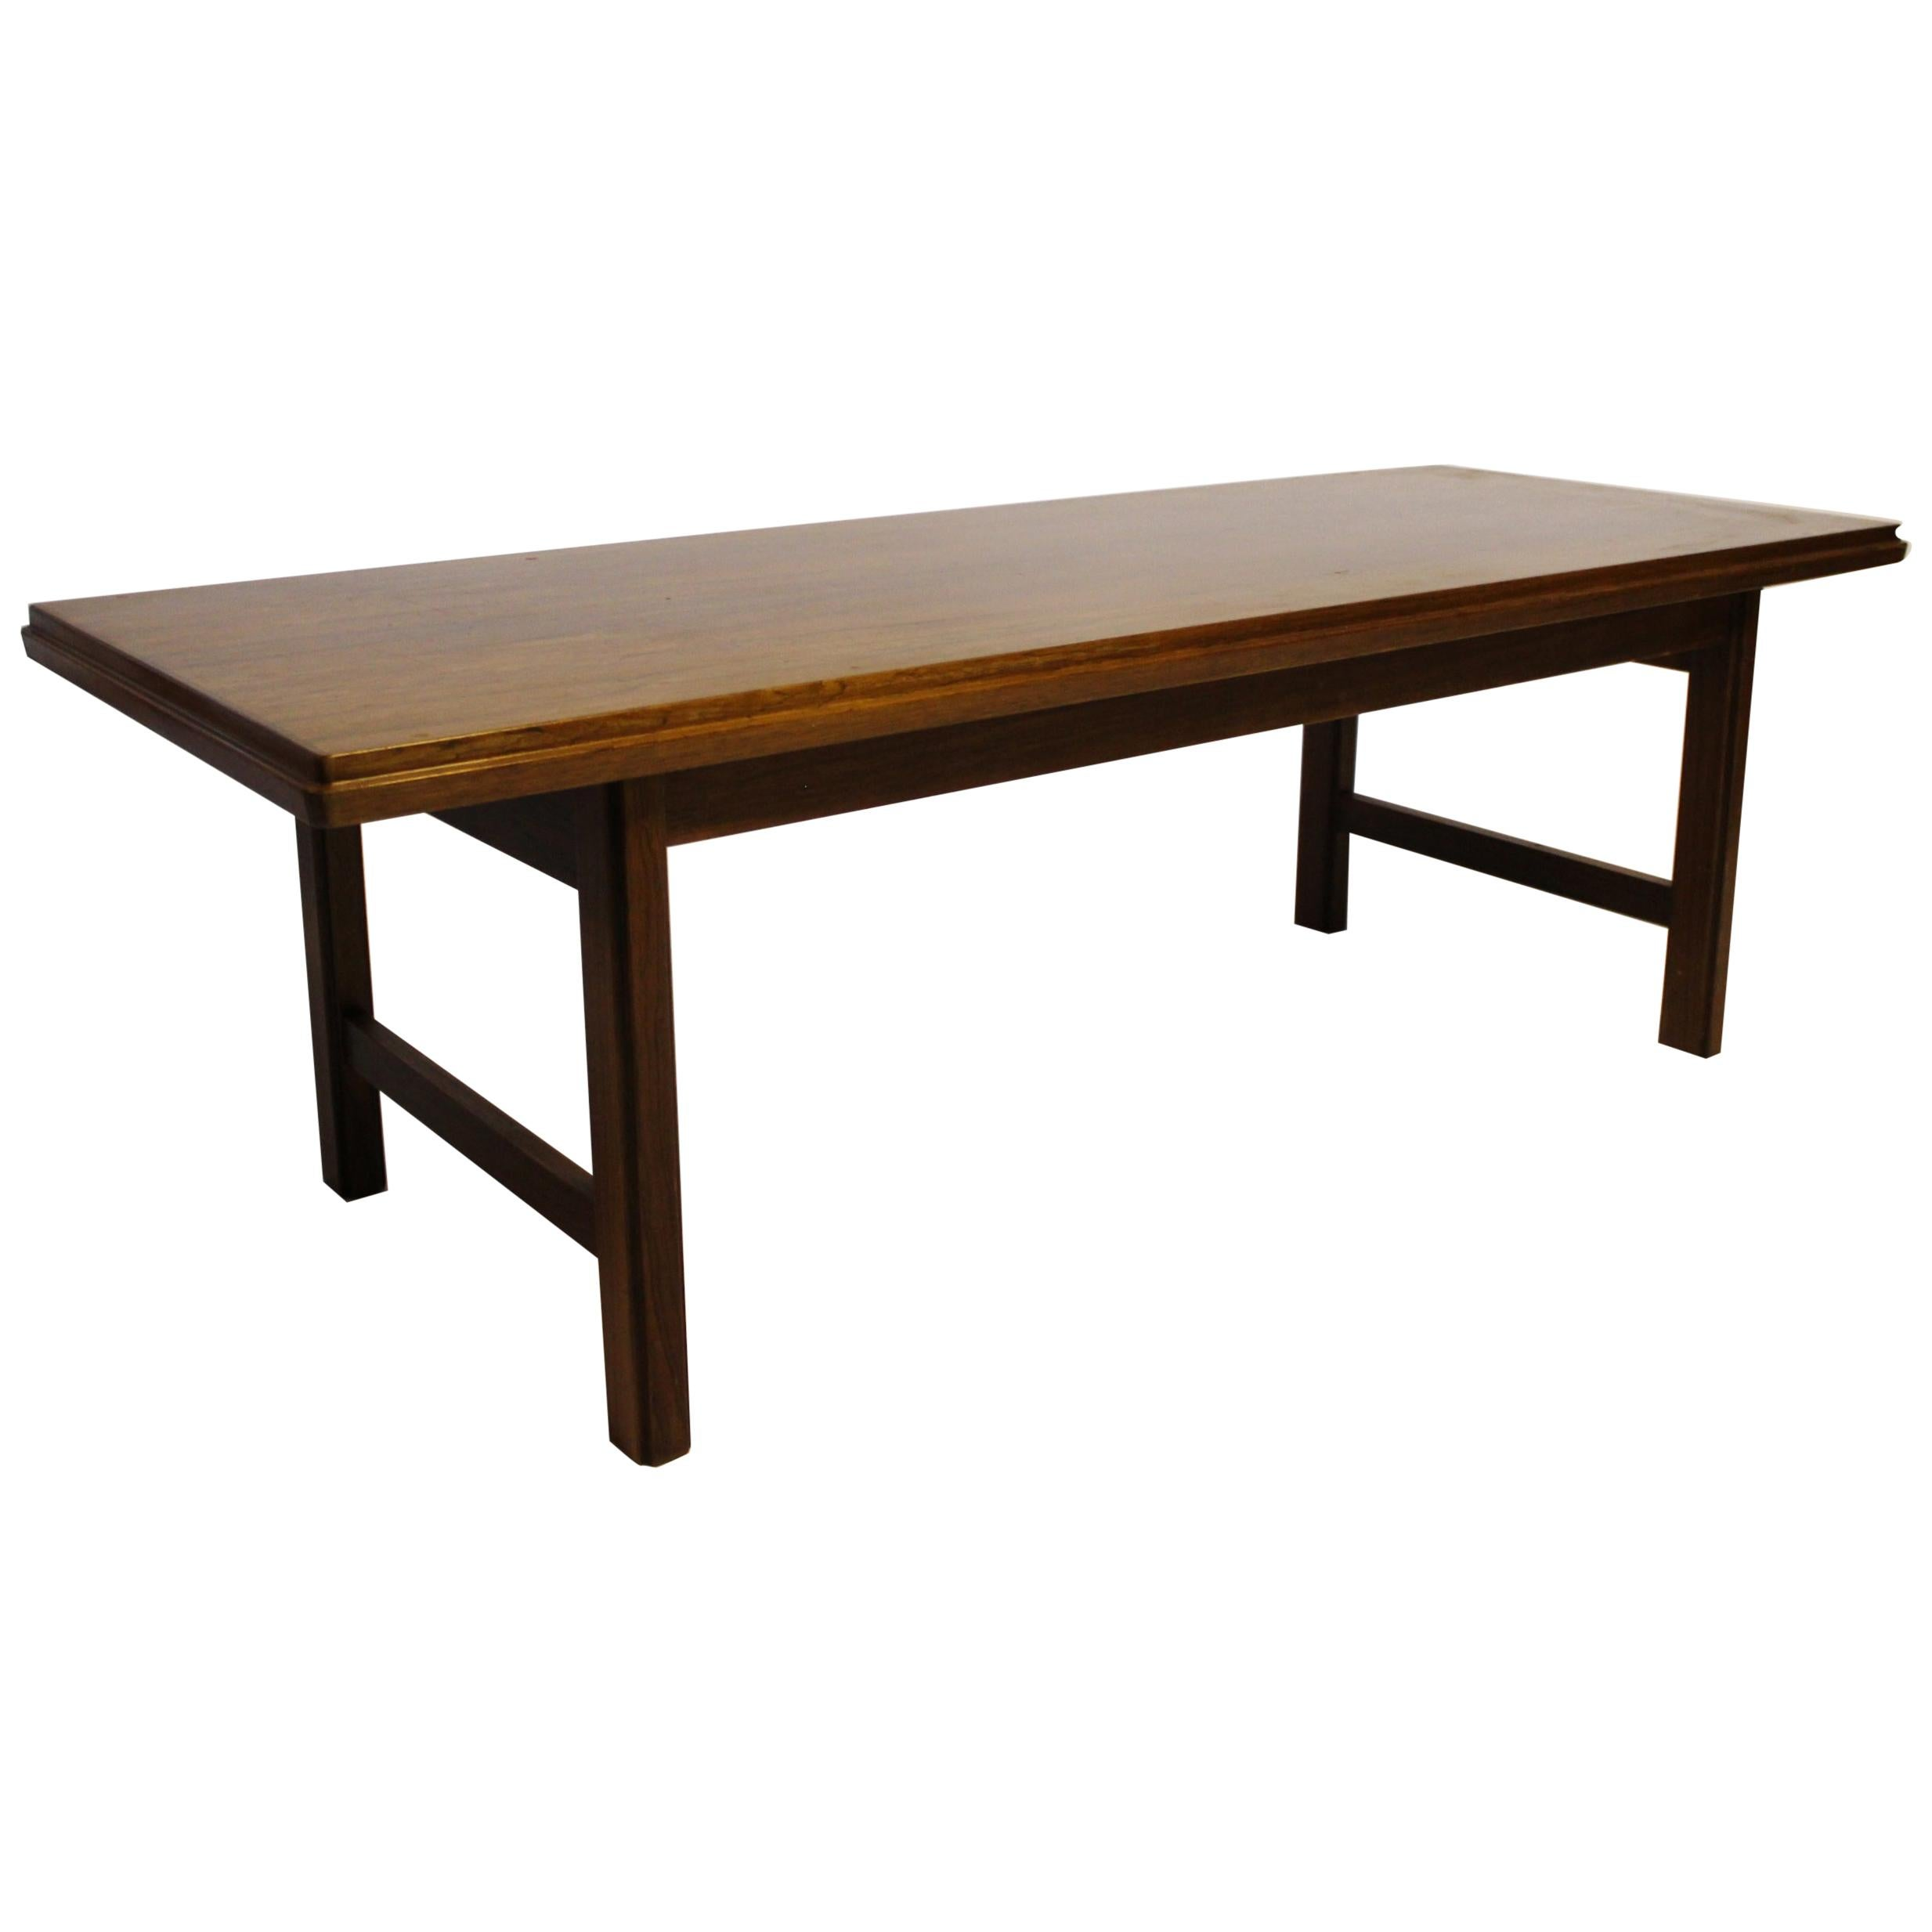 Coffee Table in Rosewood Designed by Edmund Jørgensen, 1960s